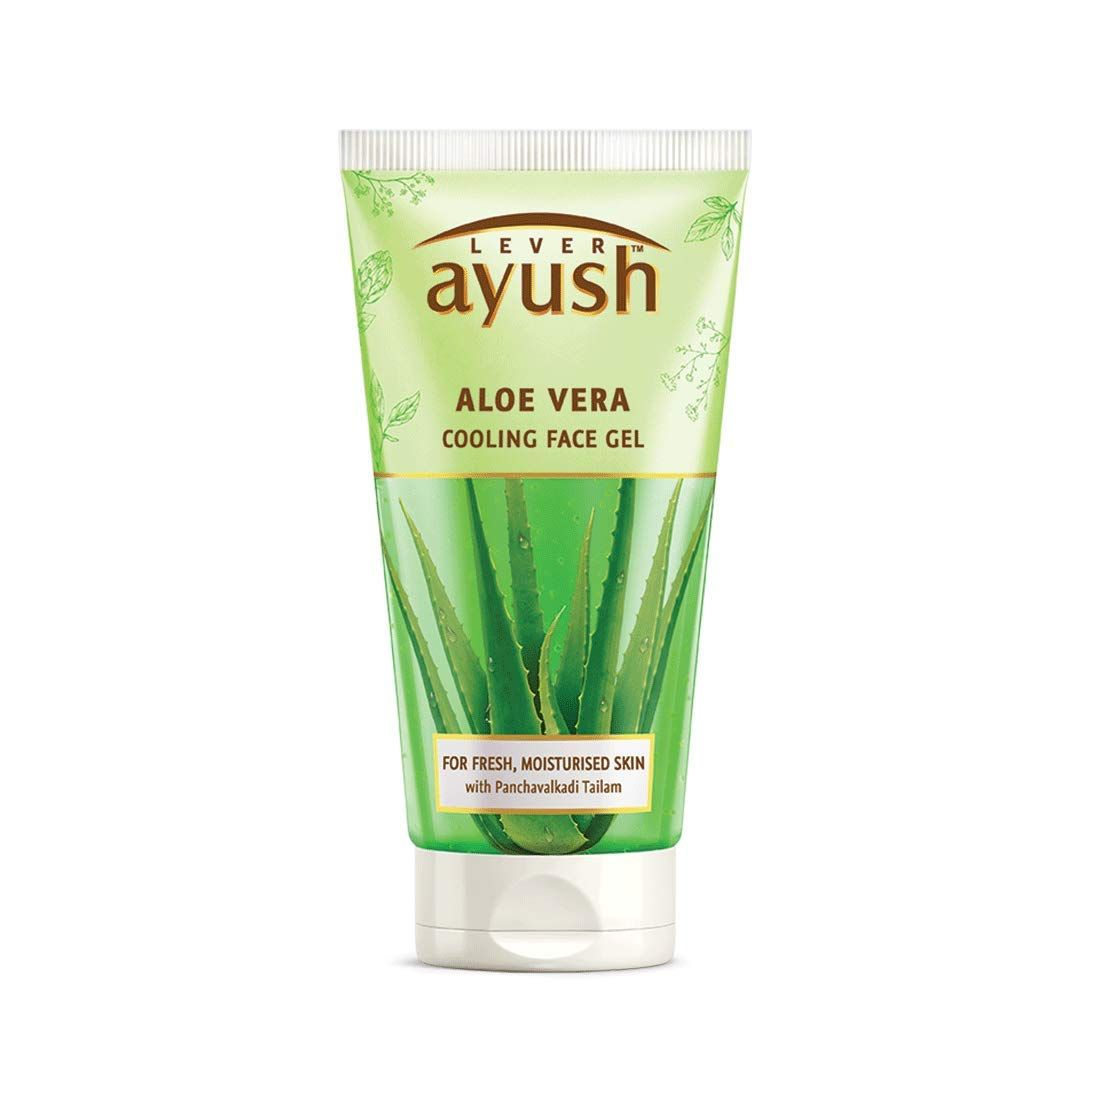 Lever Ayush Aloe Vera Cooling Face Gel 150g Rs 79 Buy Here Https Amzn To 2x8y6ze Aloe Vera Gel Face Aloe Vera For Face Aloe Vera